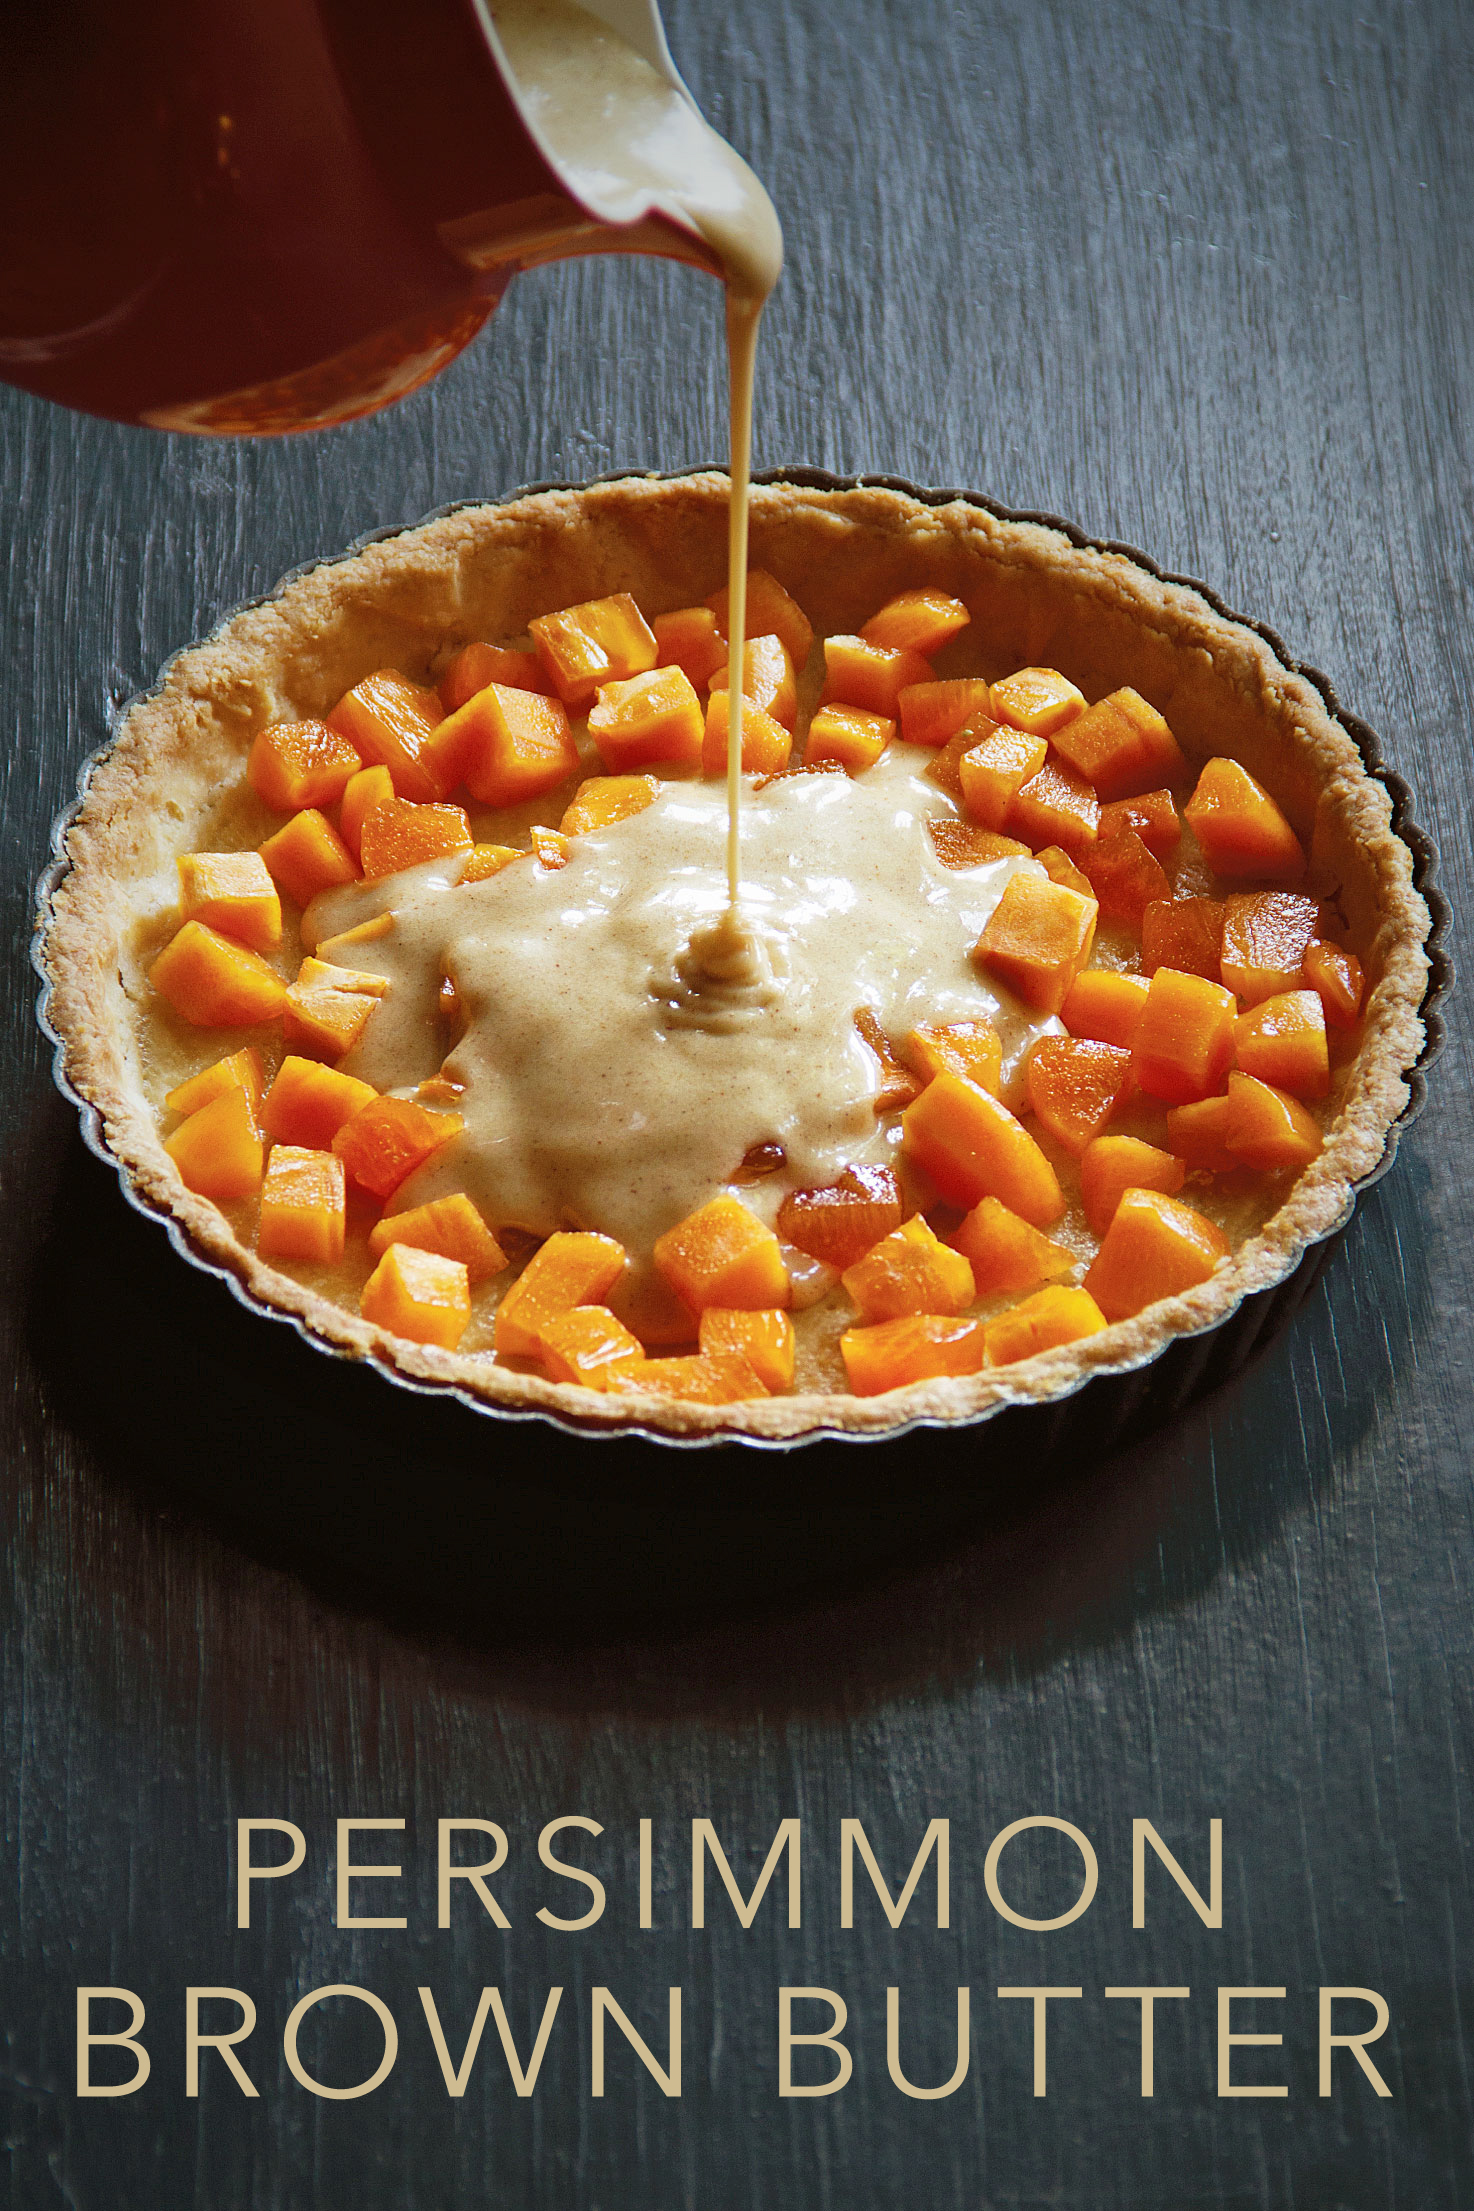 Holiday Desserts: Persimmon Tart with Brown Butter Batter